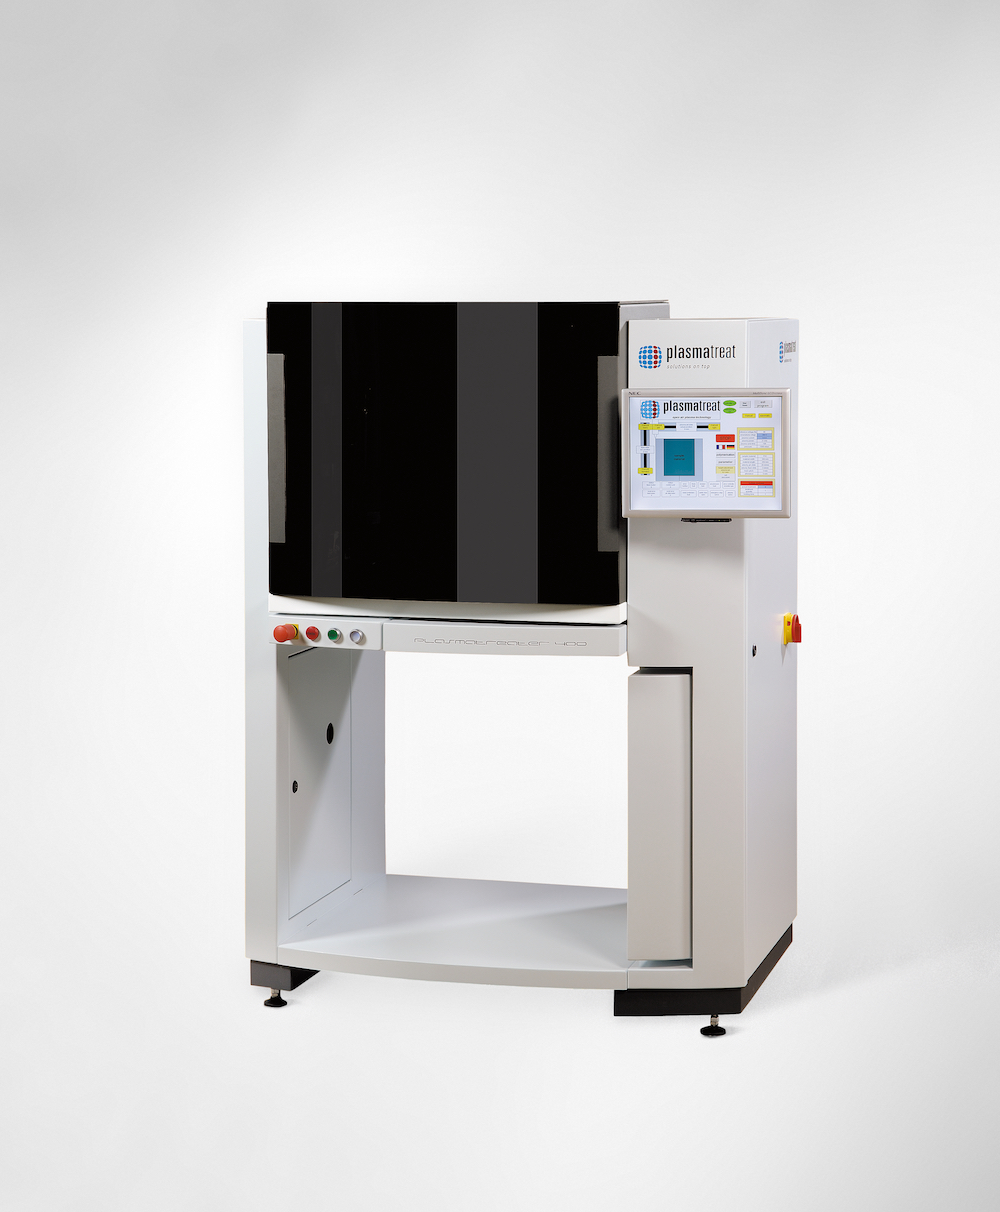 Plasmatreat laboratory plasma system Openair® Plasmatreater AS 400 to customize surfaces